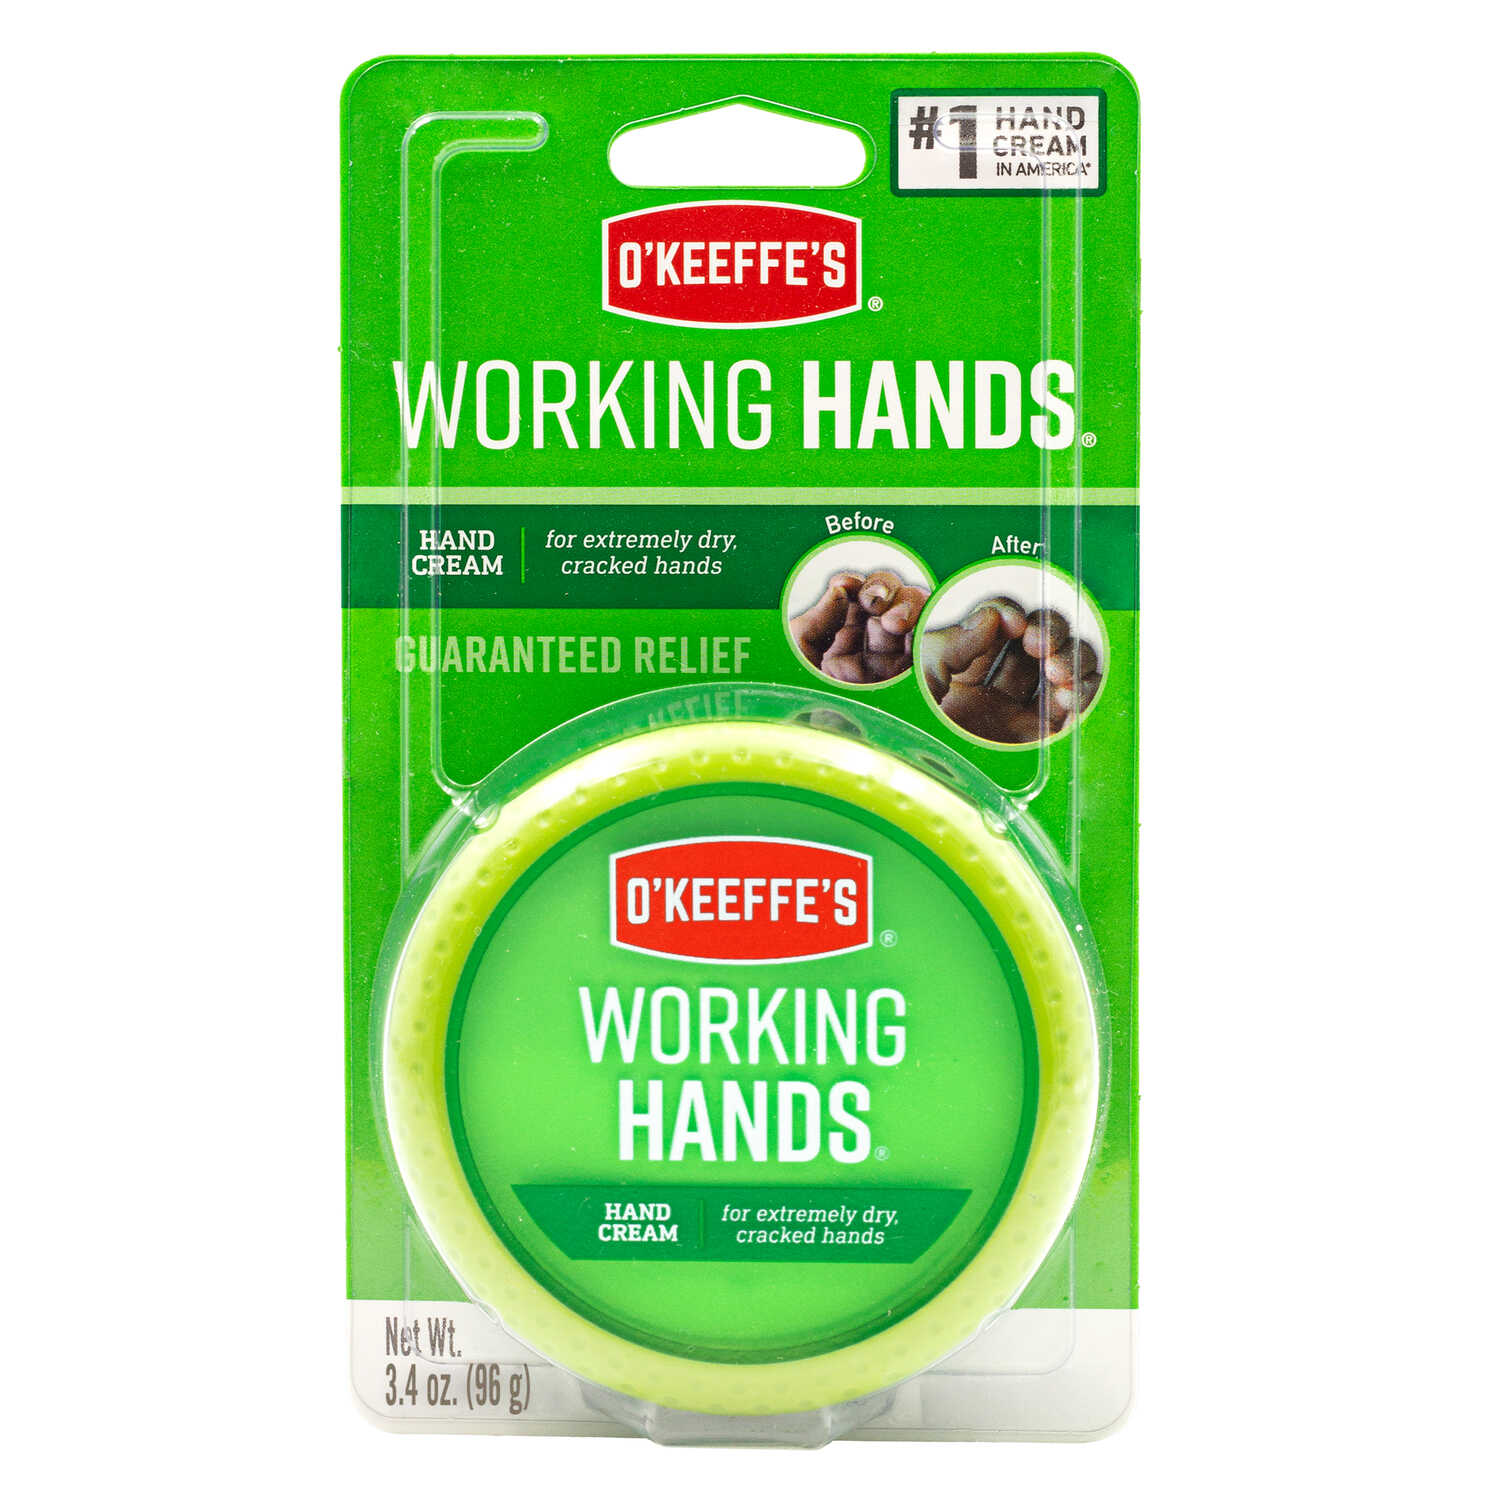 O'Keeffe's  Working Hands  No Scent Hand Repair Cream  3.4 oz. 6 pk